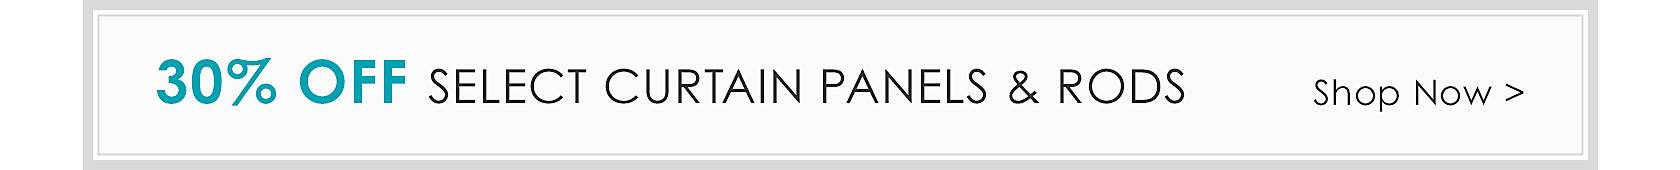 30% Off Select Curtain Panels & Rods - Shop Now